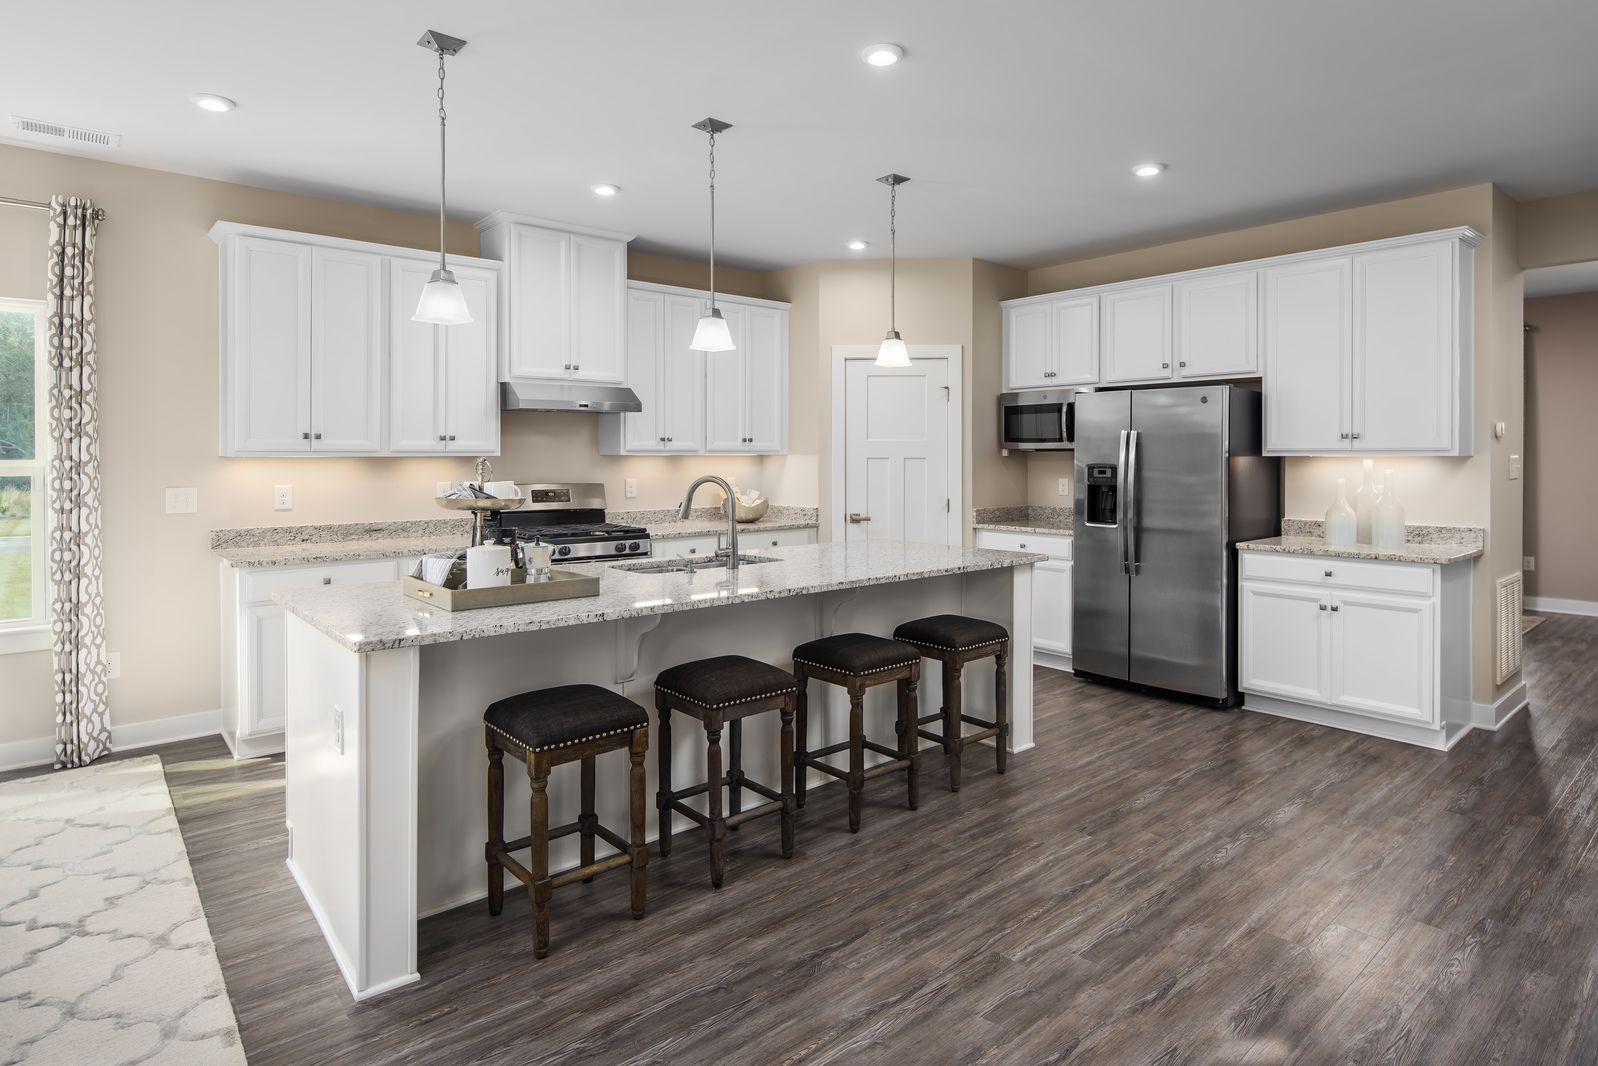 Kitchen featured in the Lehigh By Ryan Homes in Chicago, IL